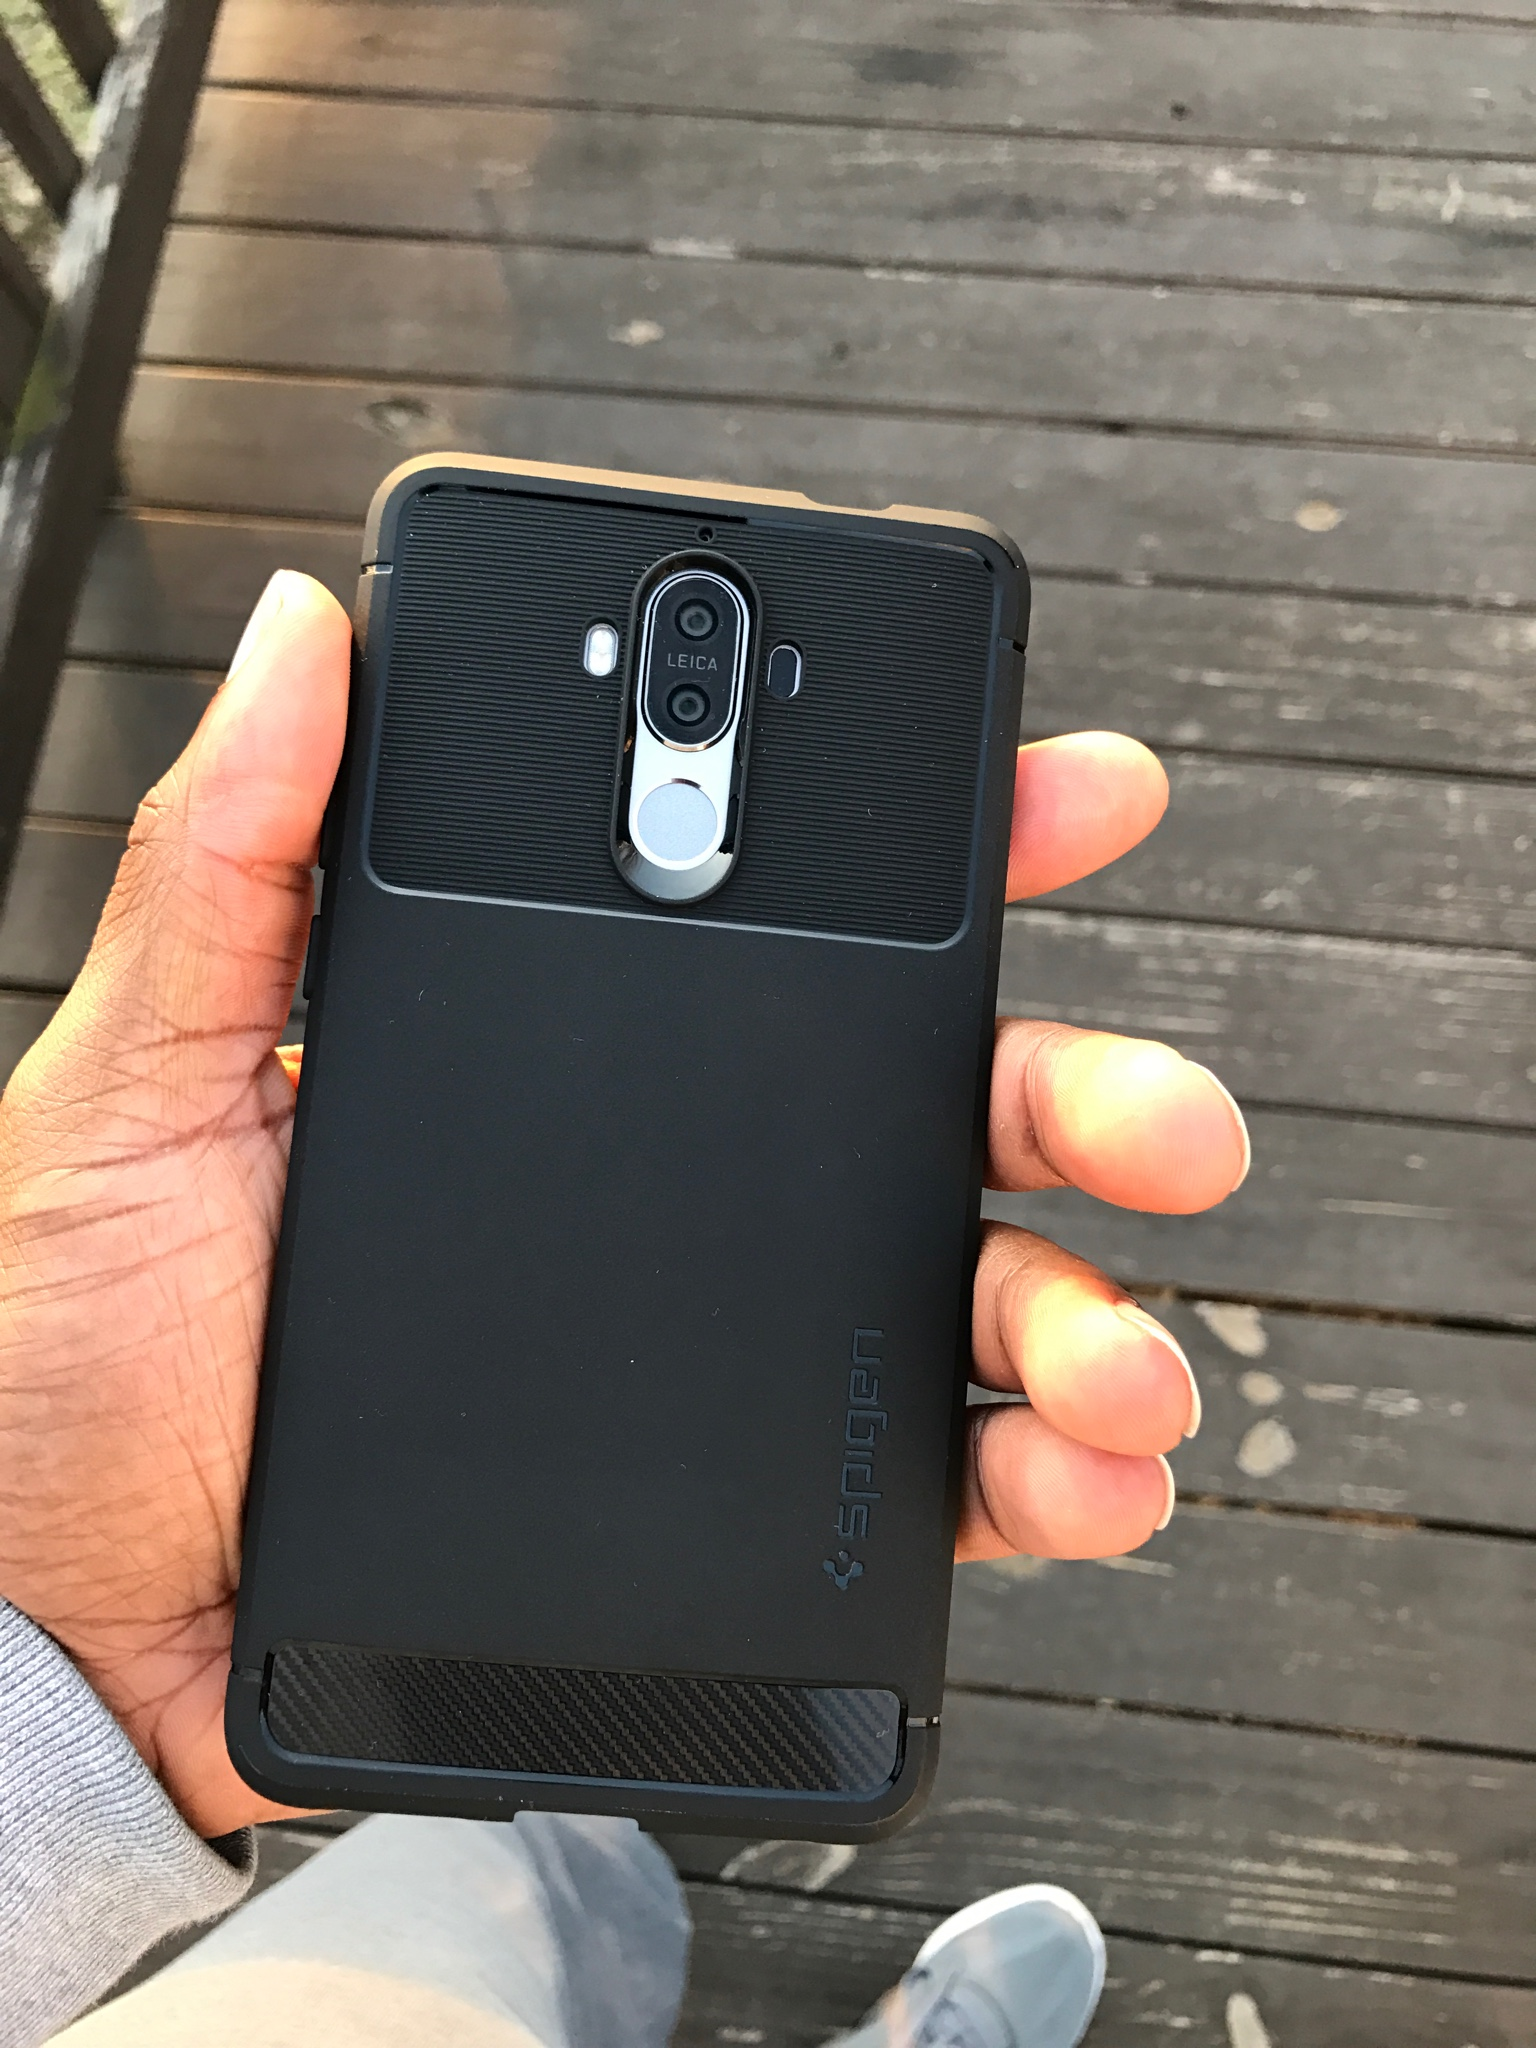 super popular 87f4c 582e4 What case are you using on the Mate 9 Pro? - Android Forums at ...